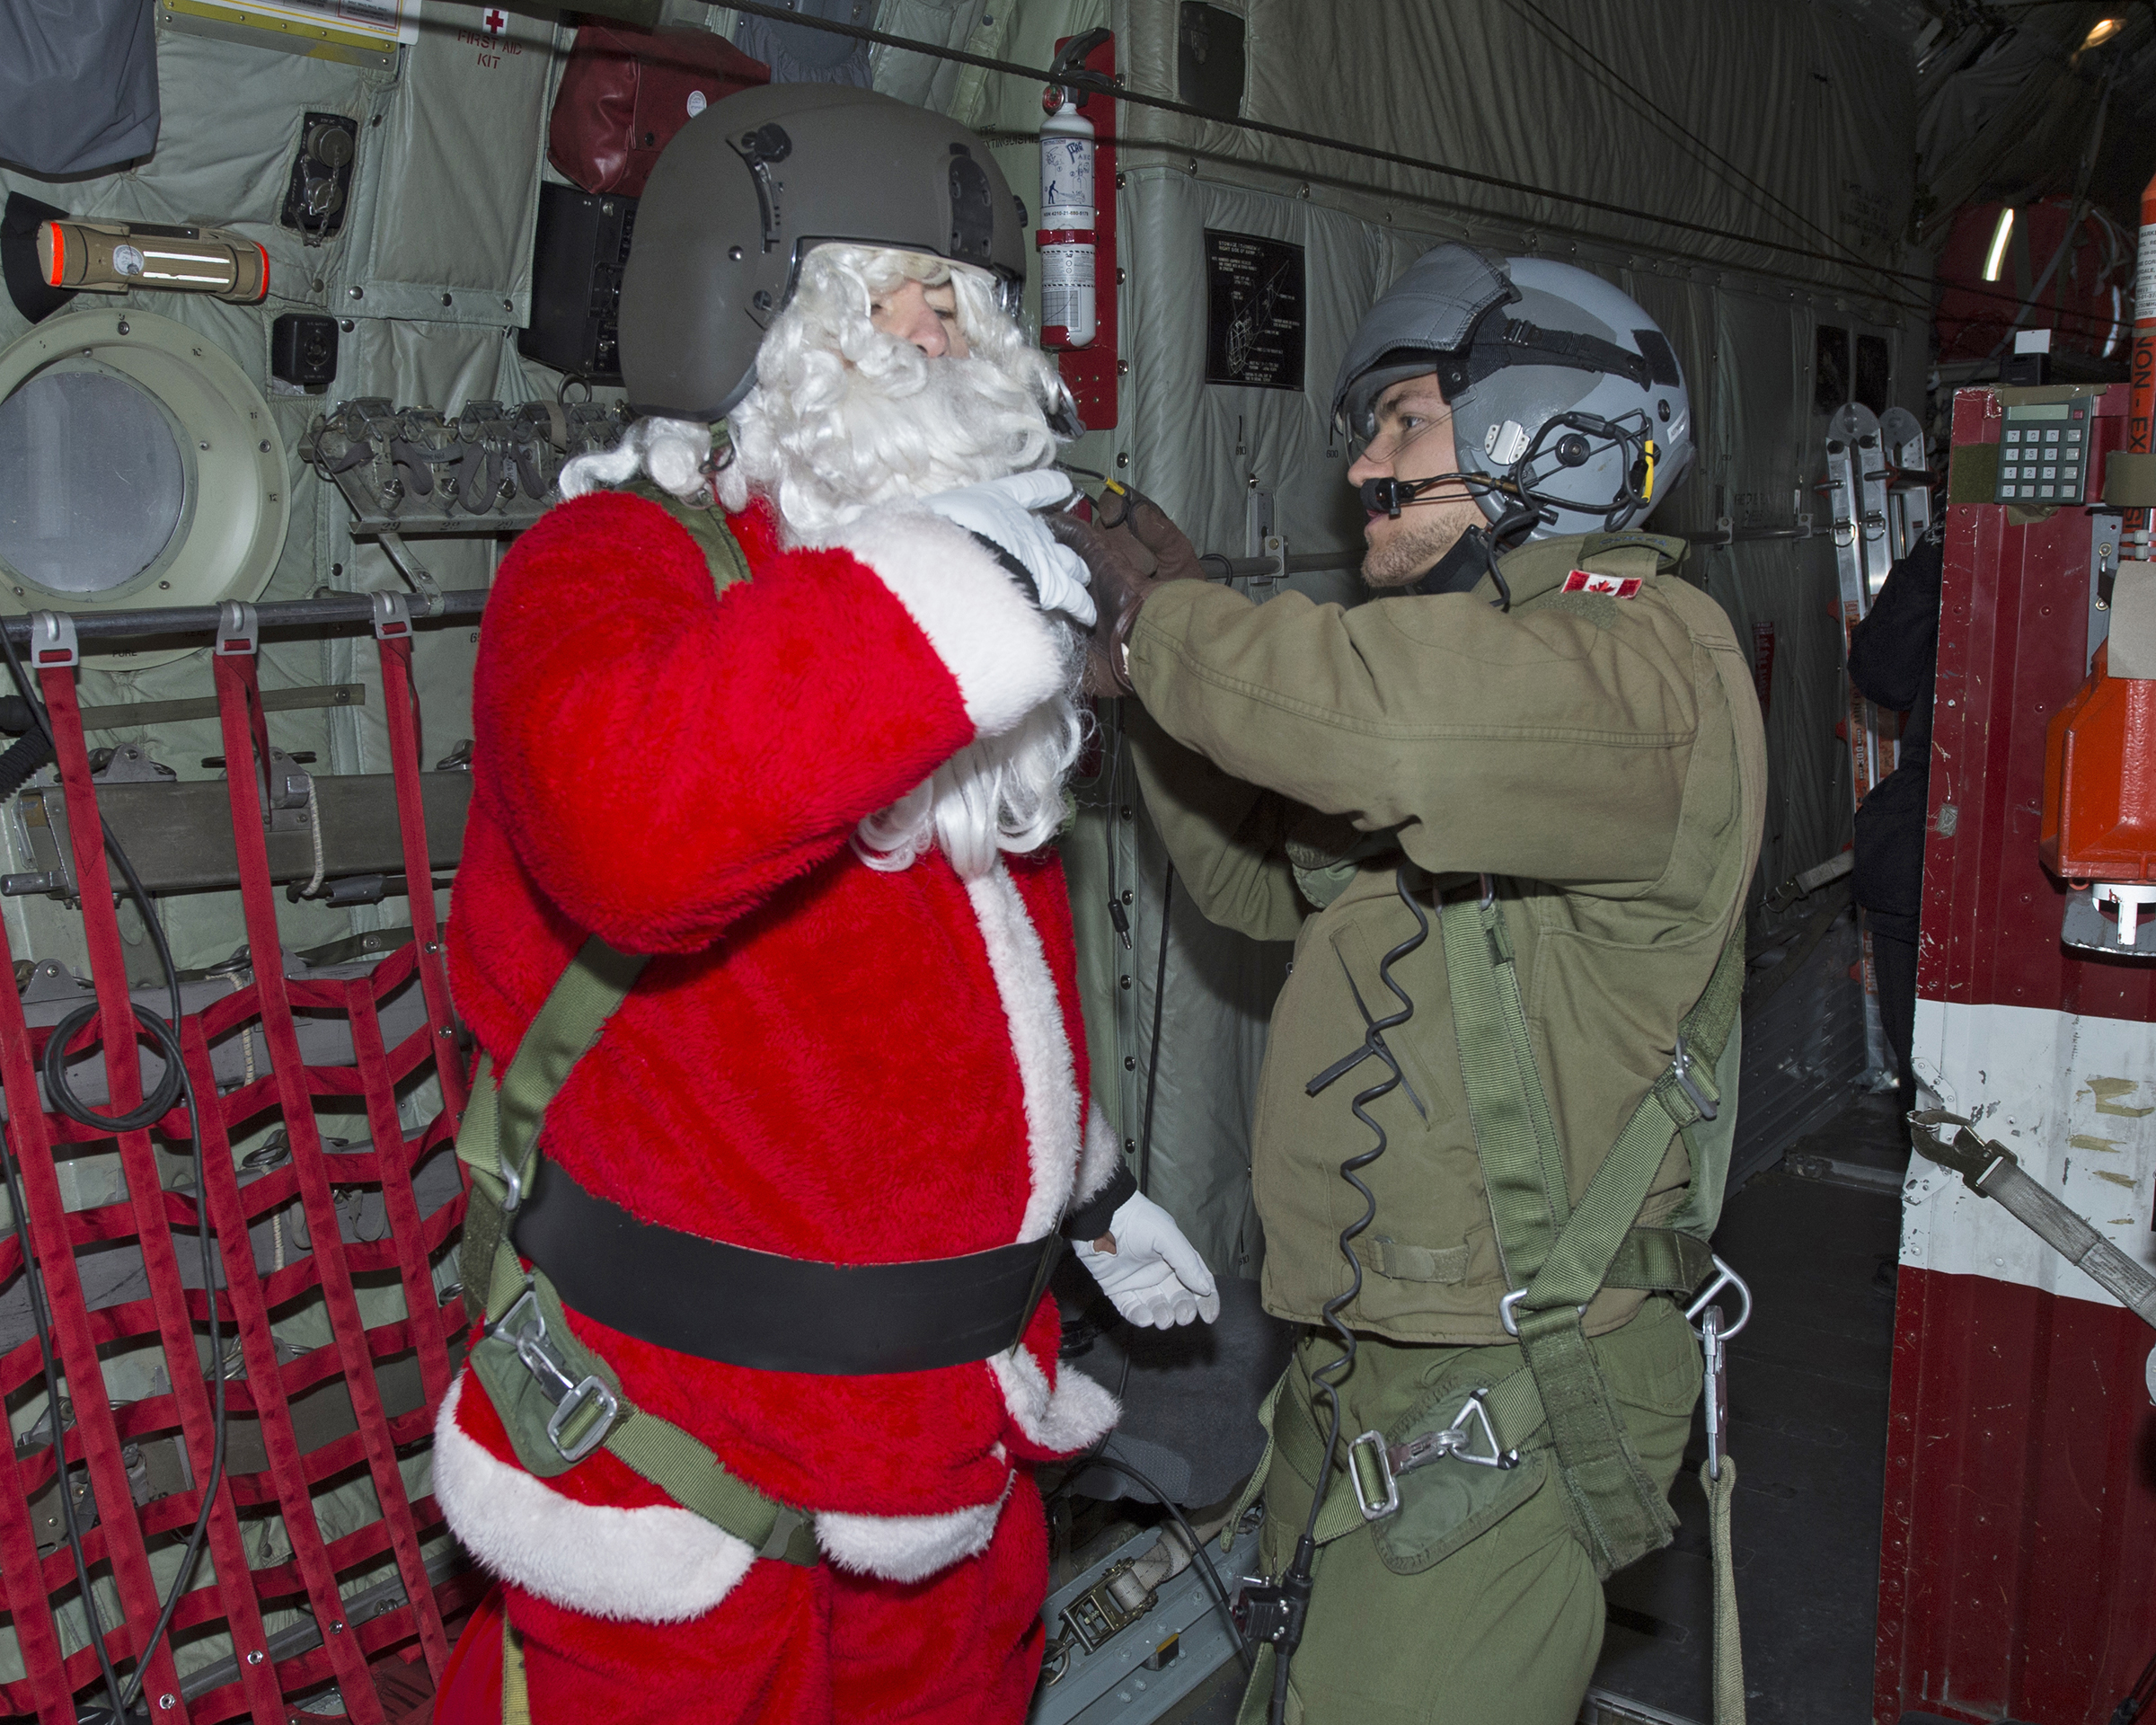 A man wearing a helmet and military flight suit adjusts the helmet worn by a person dressed as Santa Claus inside a large aircraft.